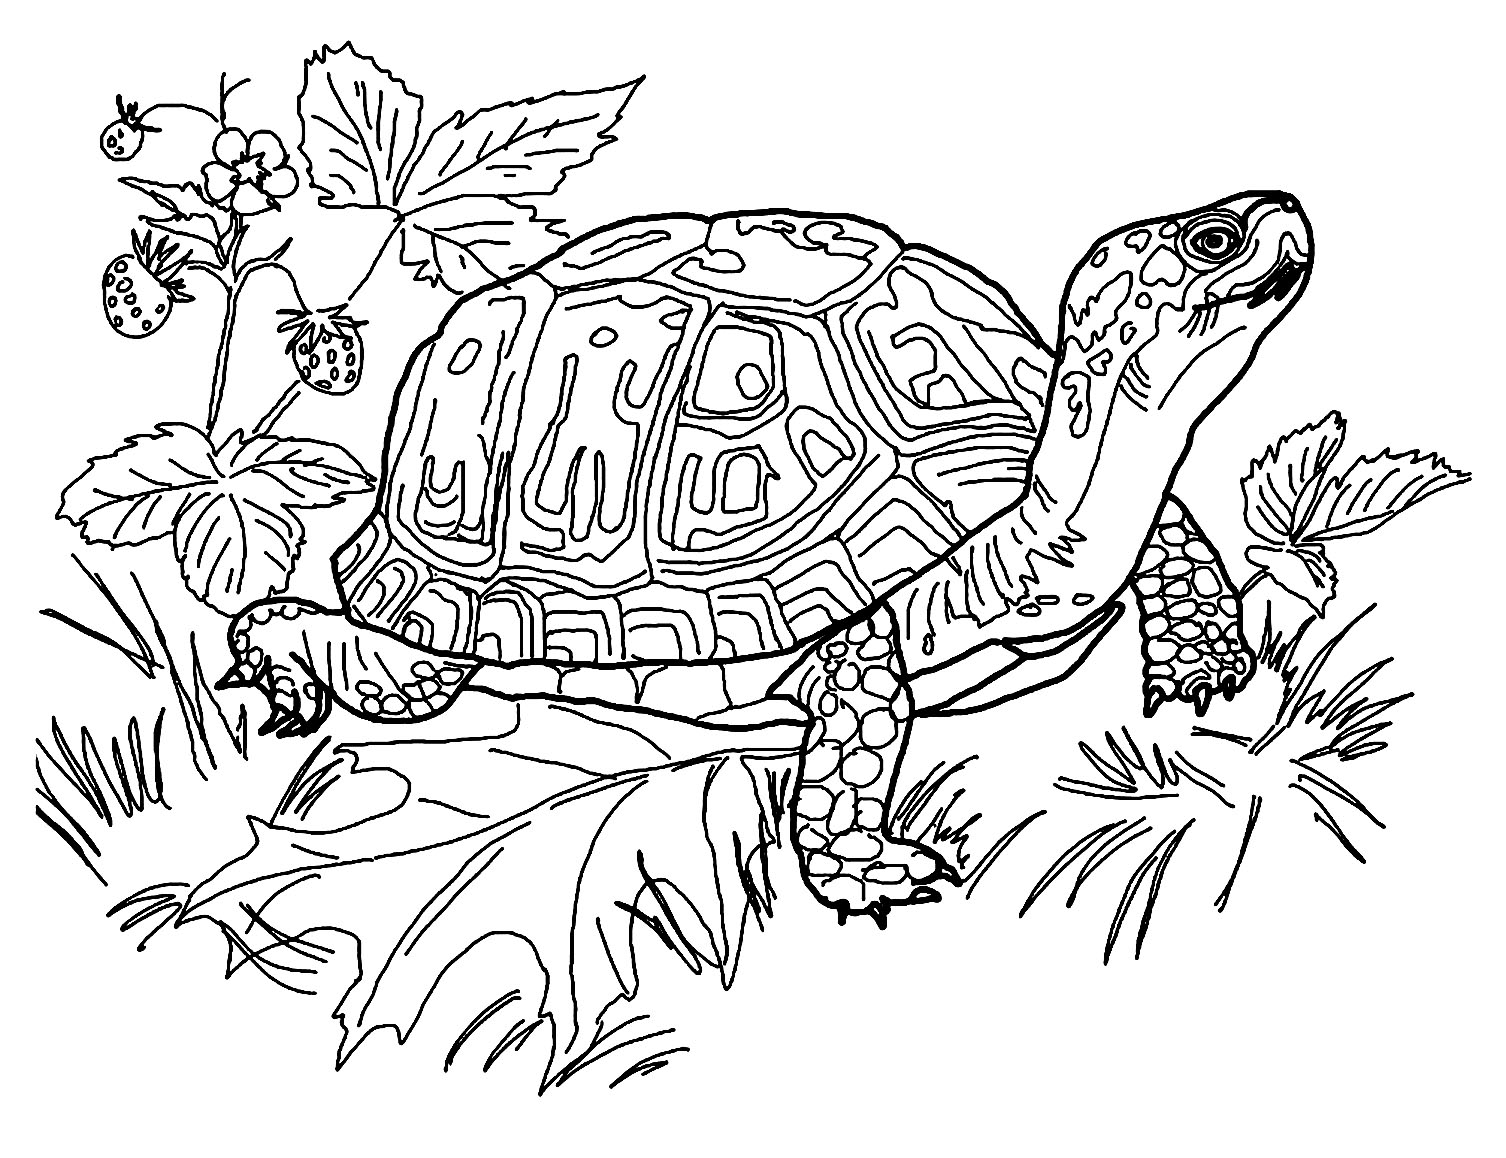 tortoise coloring page coloring pages turtles free printable coloring pages tortoise coloring page